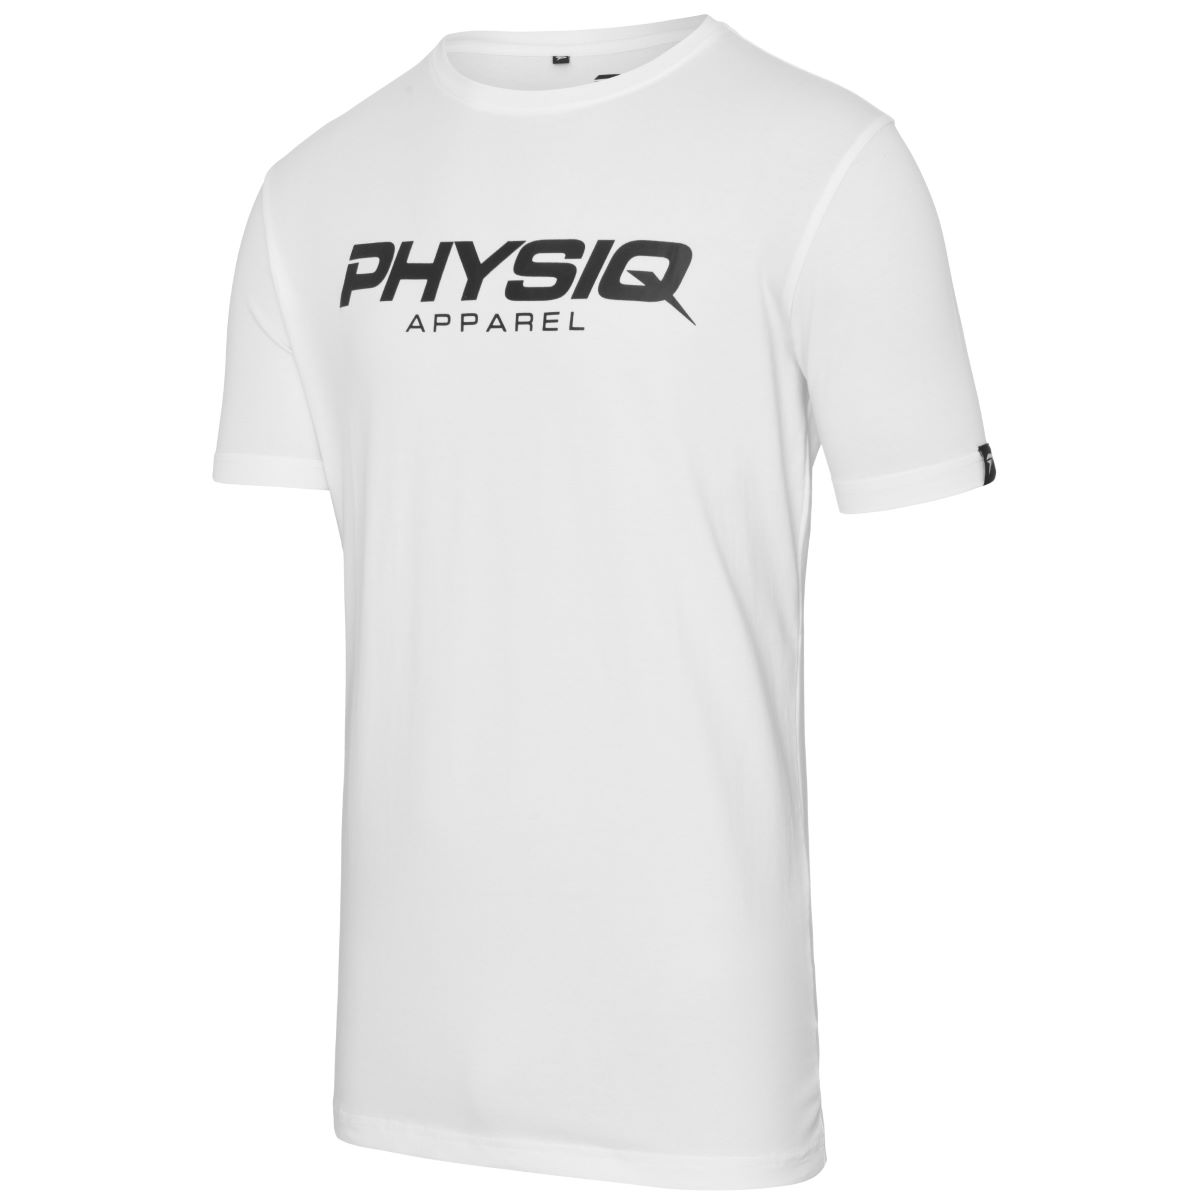 Physiq Apparel Supreme Short Sleeve T Shirt - Camisetas de manga corta para running